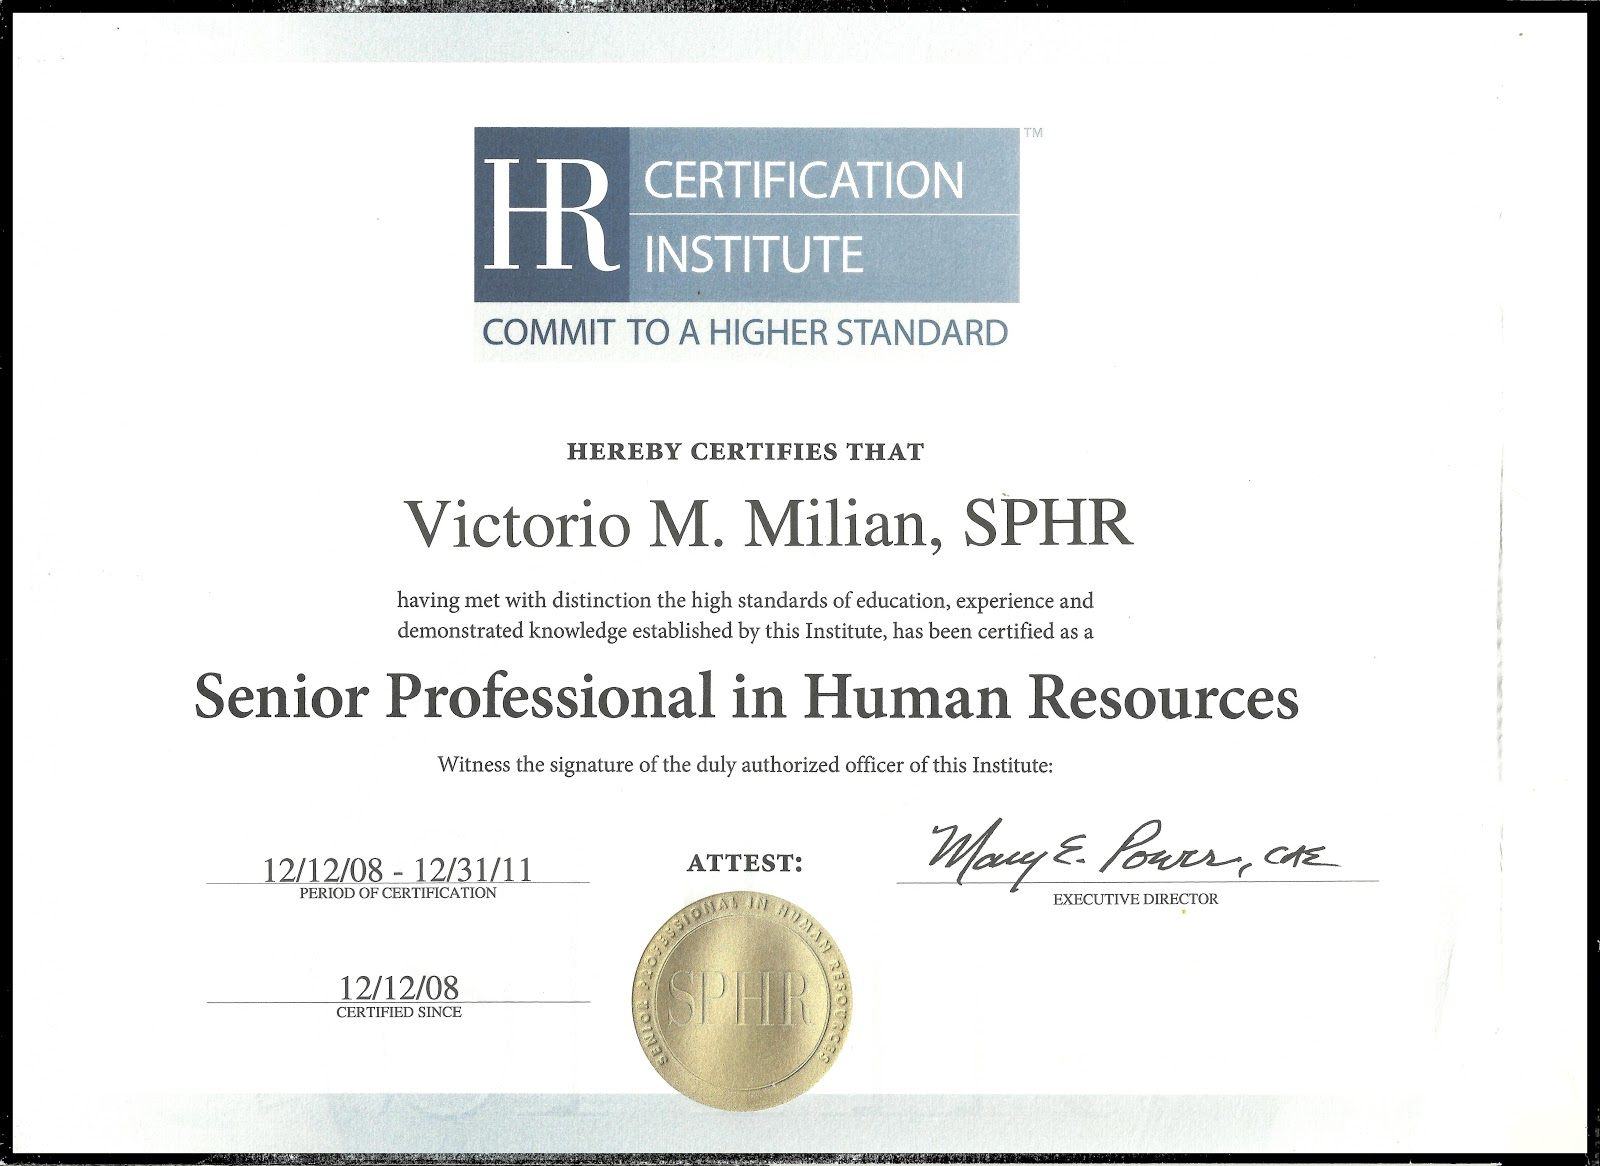 certification phr human resources certificate sphr hr professional resource preparation hrci management certifications course eight progressive six hands experience awarded